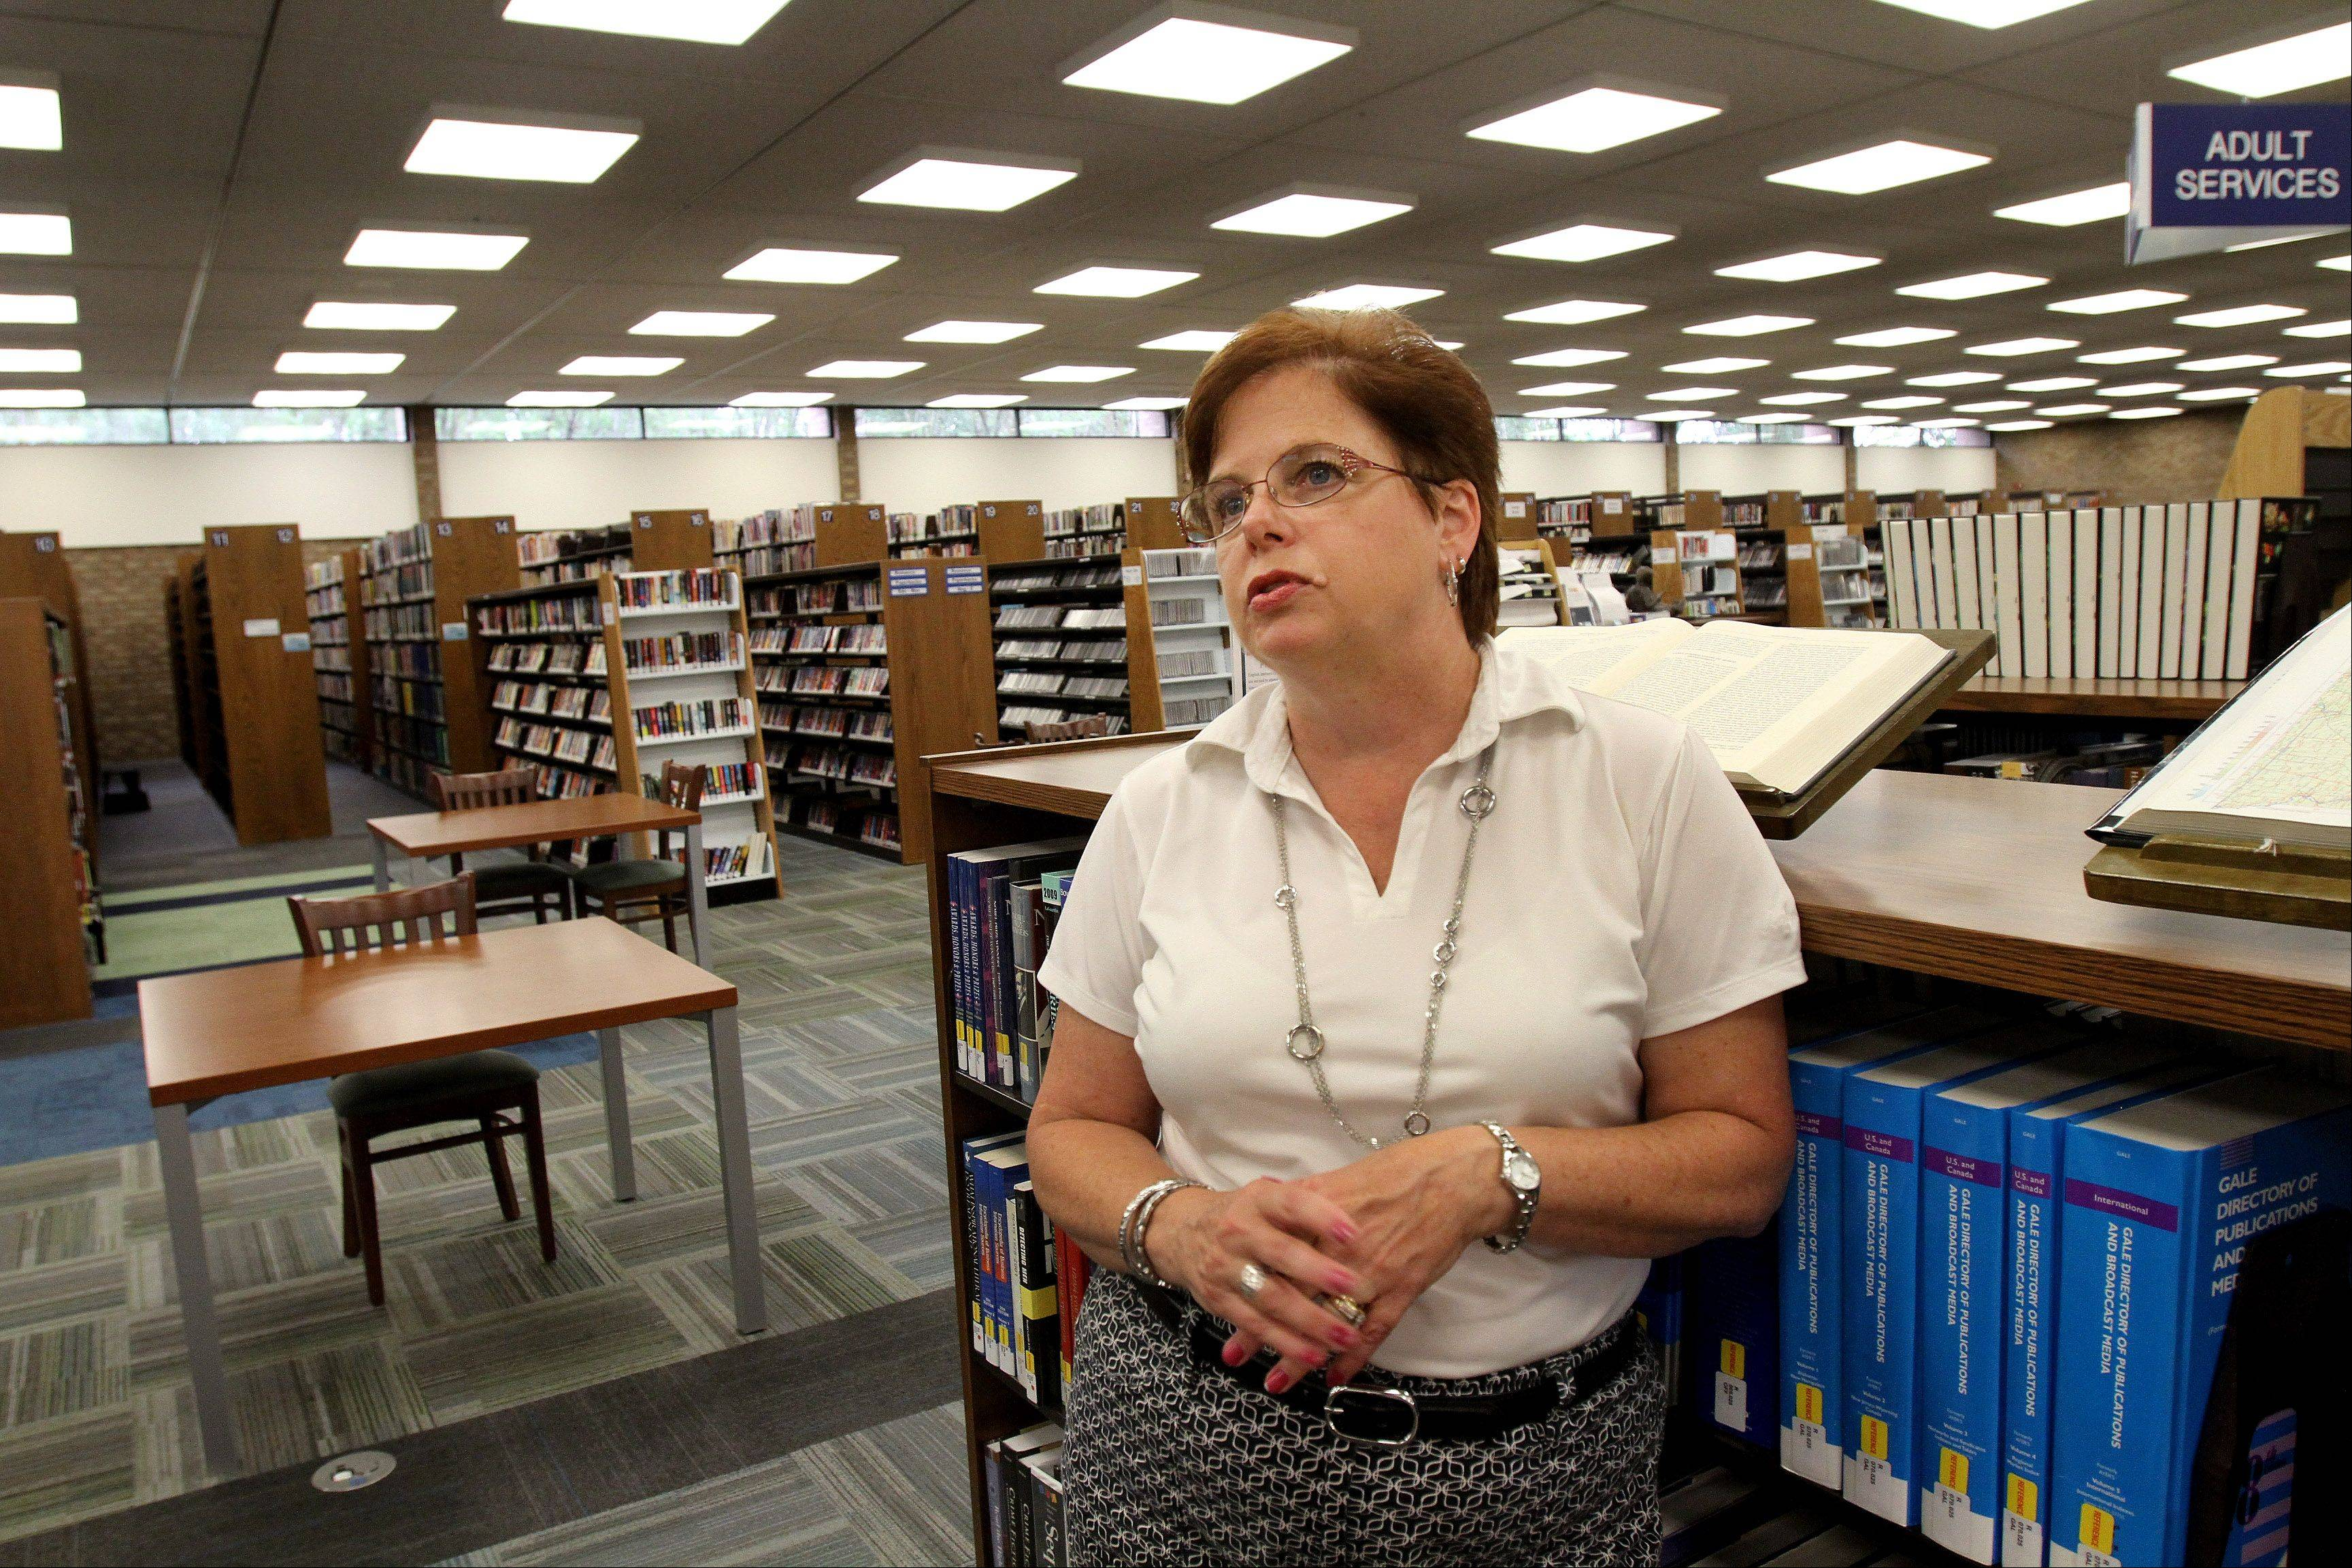 Ann Kennedy was fired by the Carol Stream library board in July after six years as director. Now, Kennedy is backing the Support the Library slate in an effort to unseat some of the board members who voted for her dismissal.